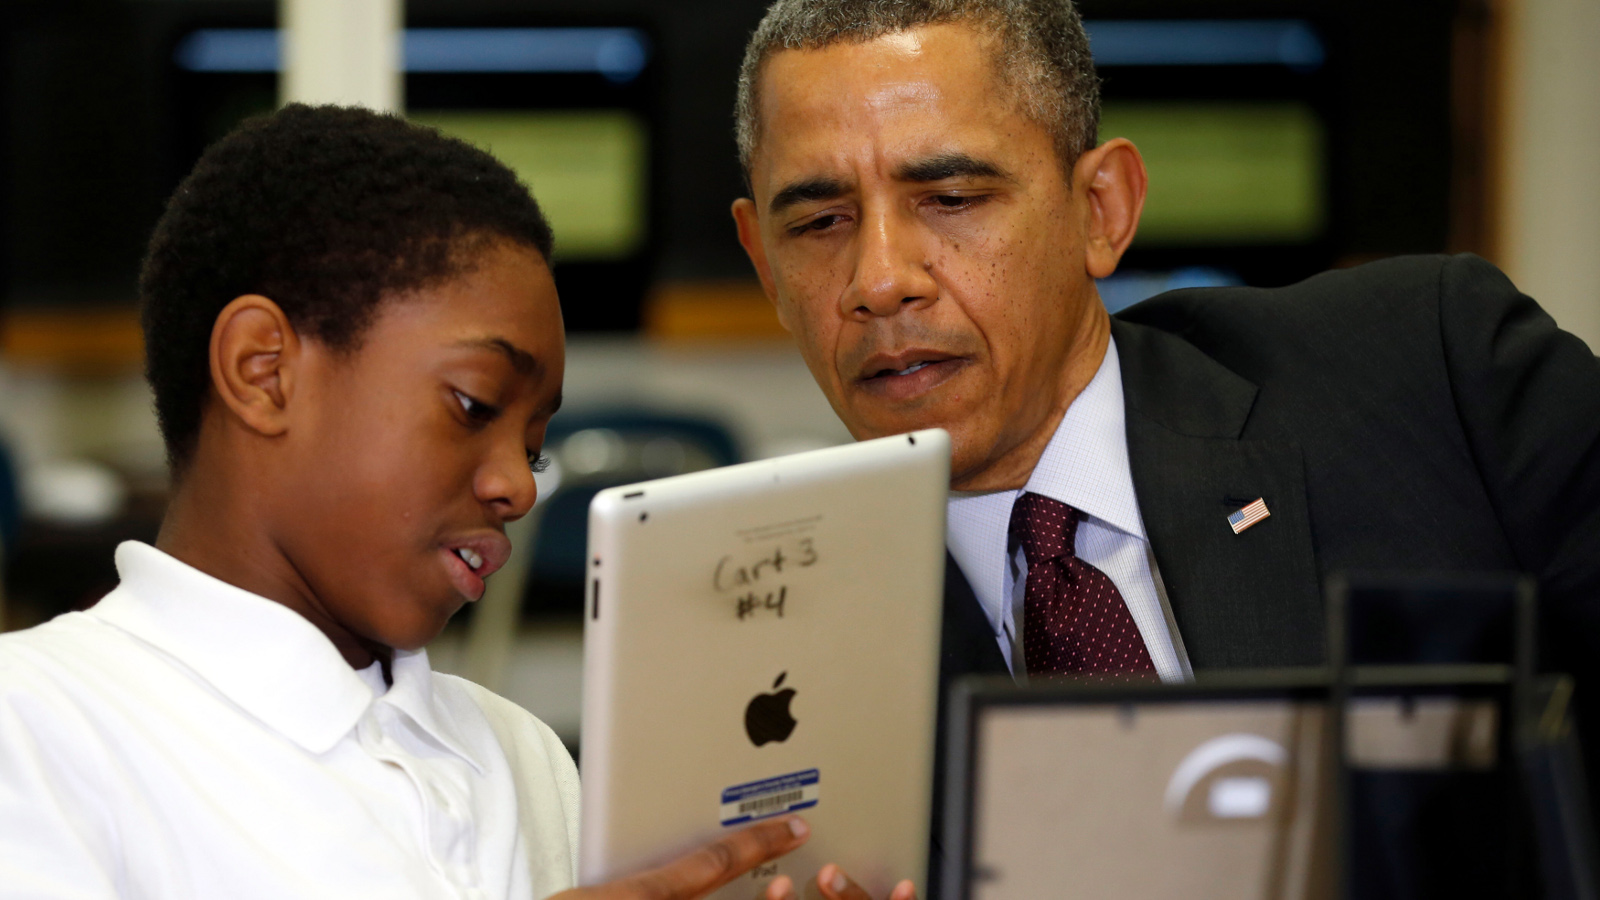 U.S. President Barack Obama talks with a student using an iPad during a visit to Buck Lodge Middle School in Adelphi, Maryland February 4, 2014. Obama made the visit to highlight the progress of his ConnectED goal of connecting 99% of students to next-generation broadband and wireless technology within five years.